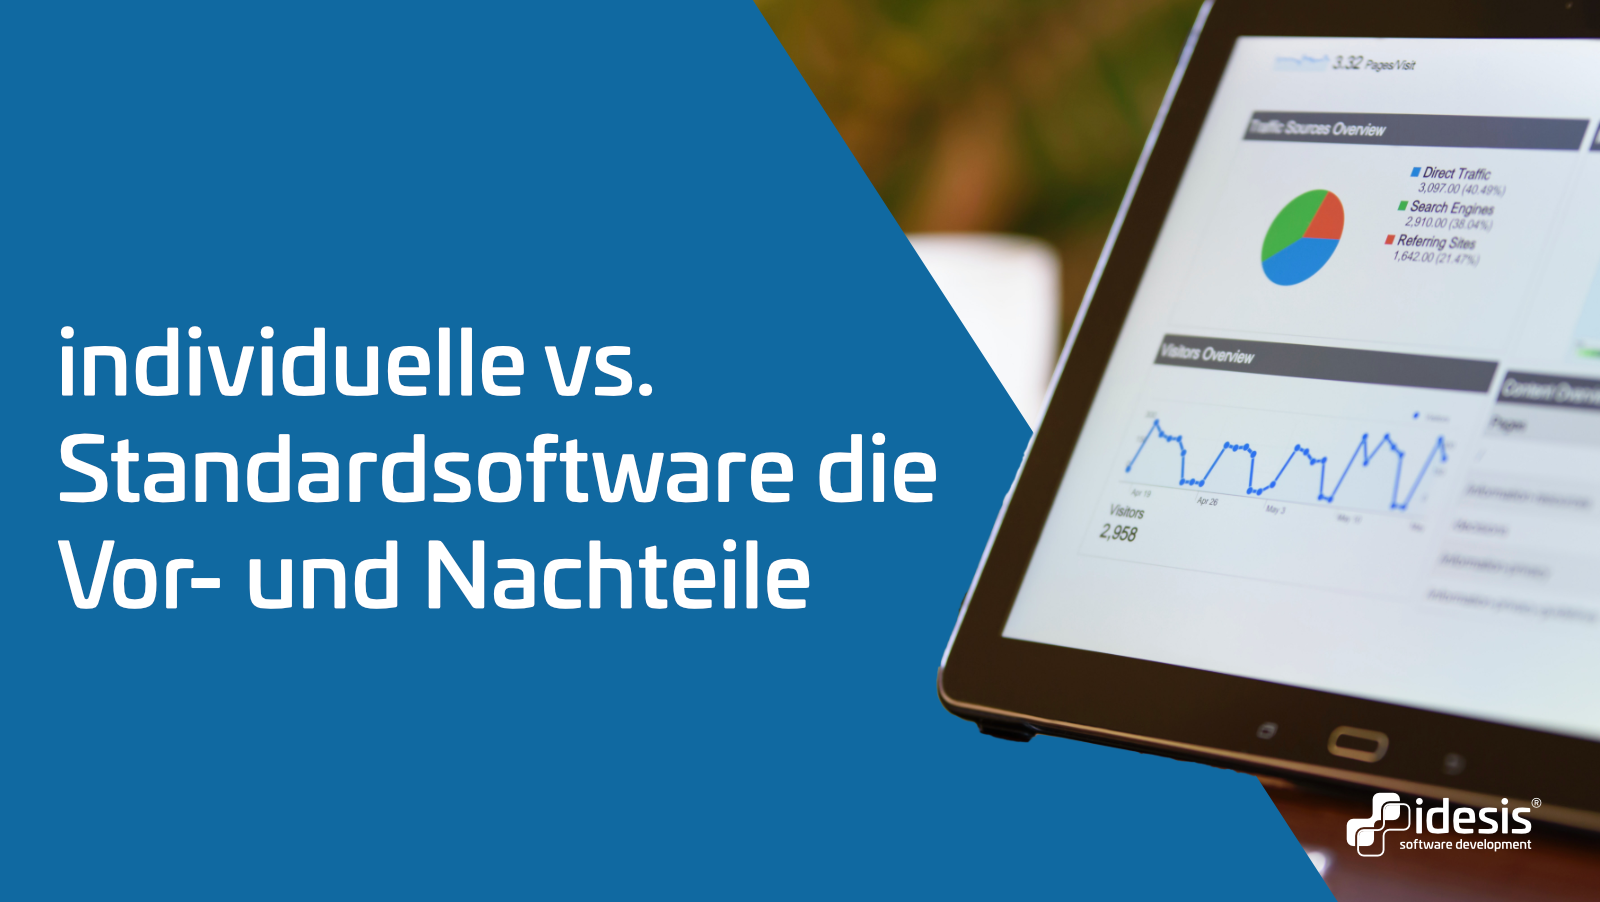 Individualsoftware vs Standardsoftware – Was ist besser?